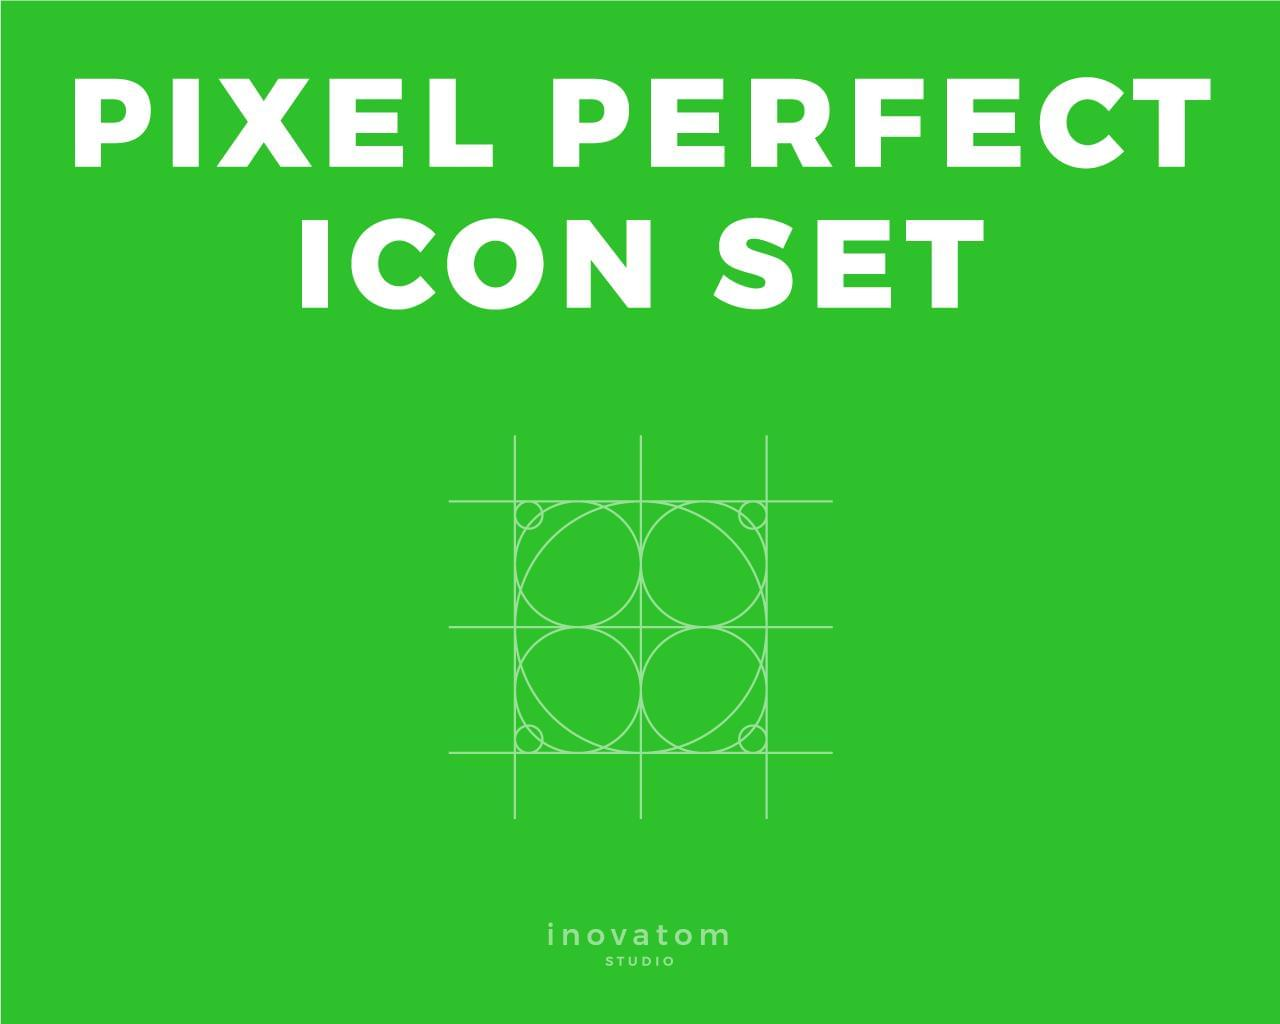 Pixel Perfect Icon set by InovatomStudios - 114635